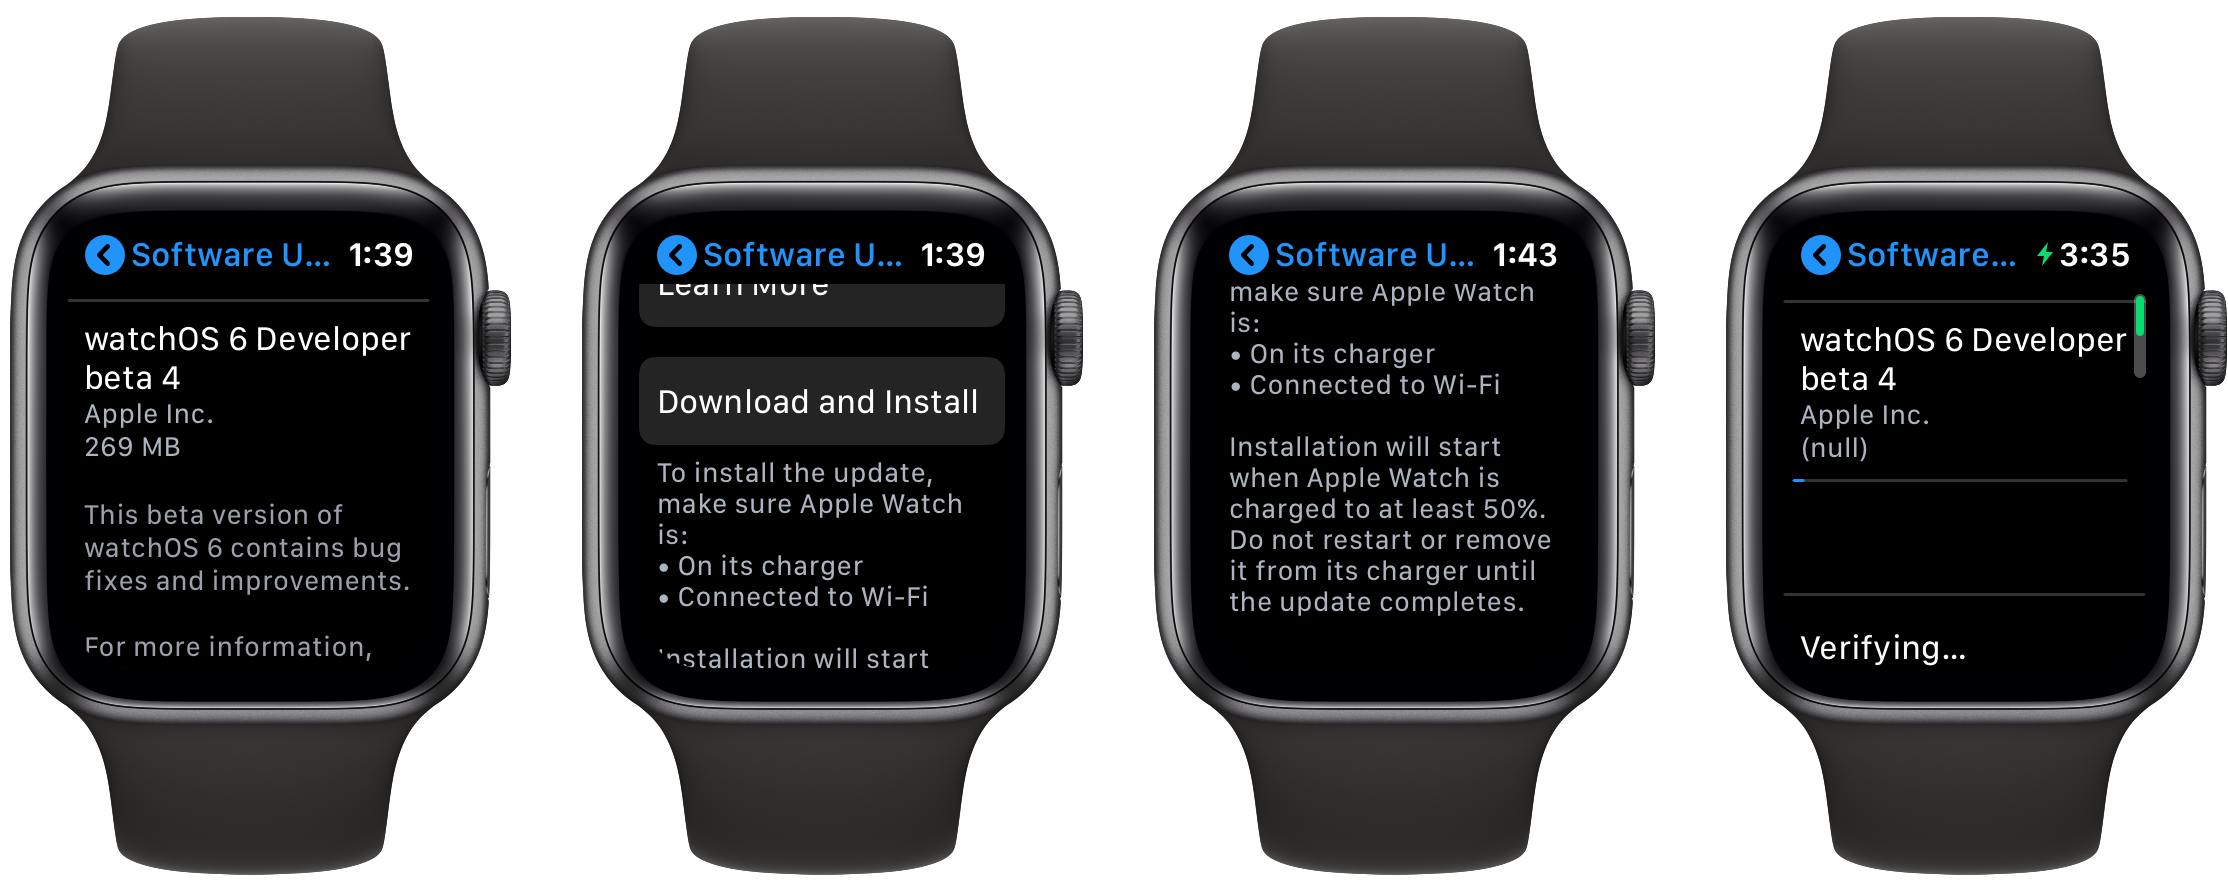 How to update software directly on Apple Watch walkthrough